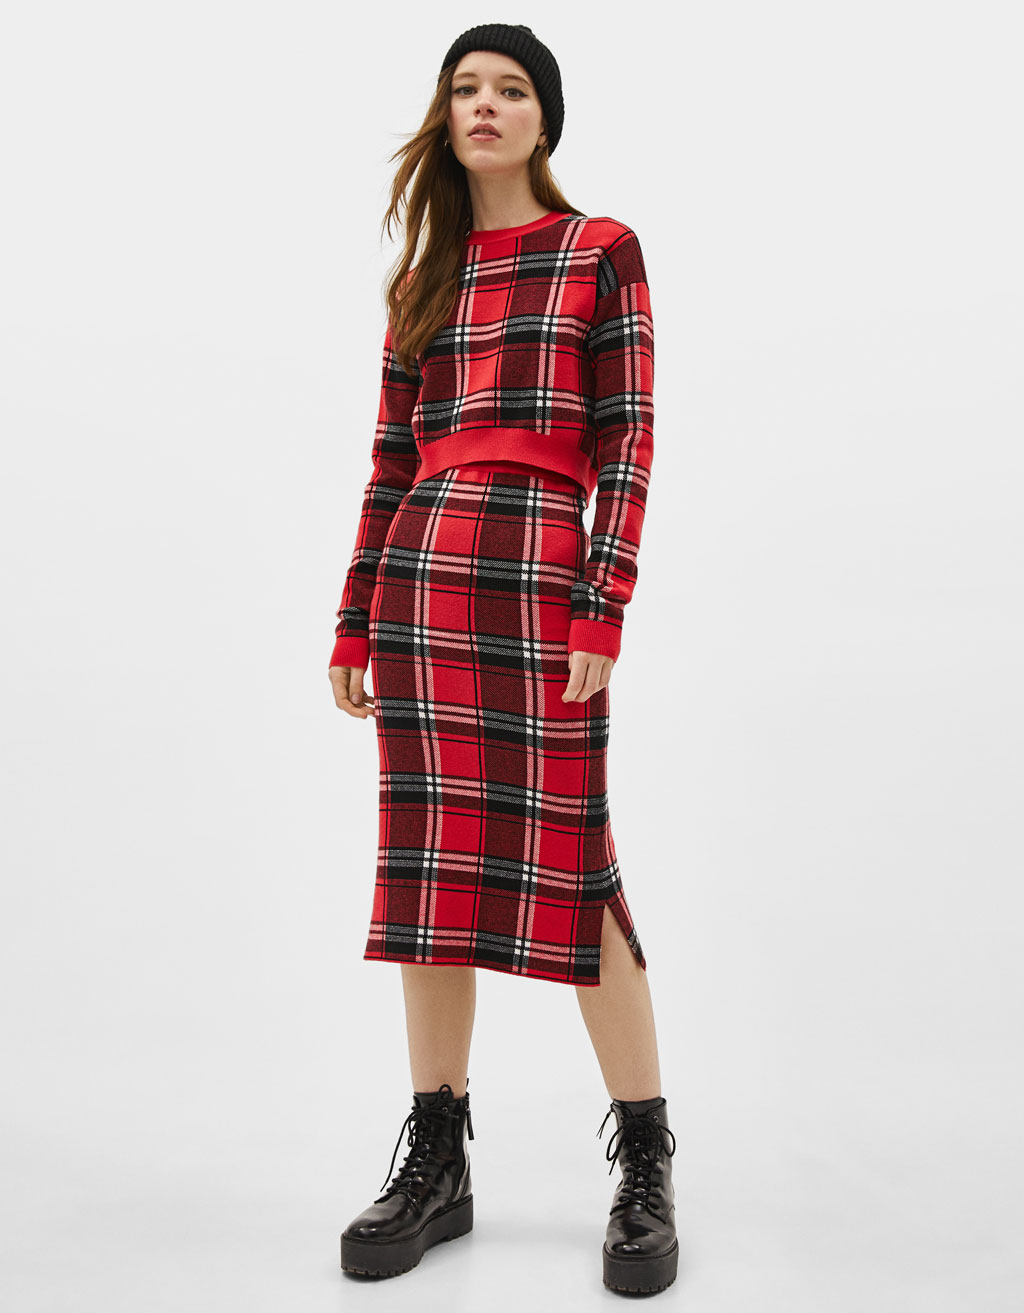 Midi skirt with check pattern